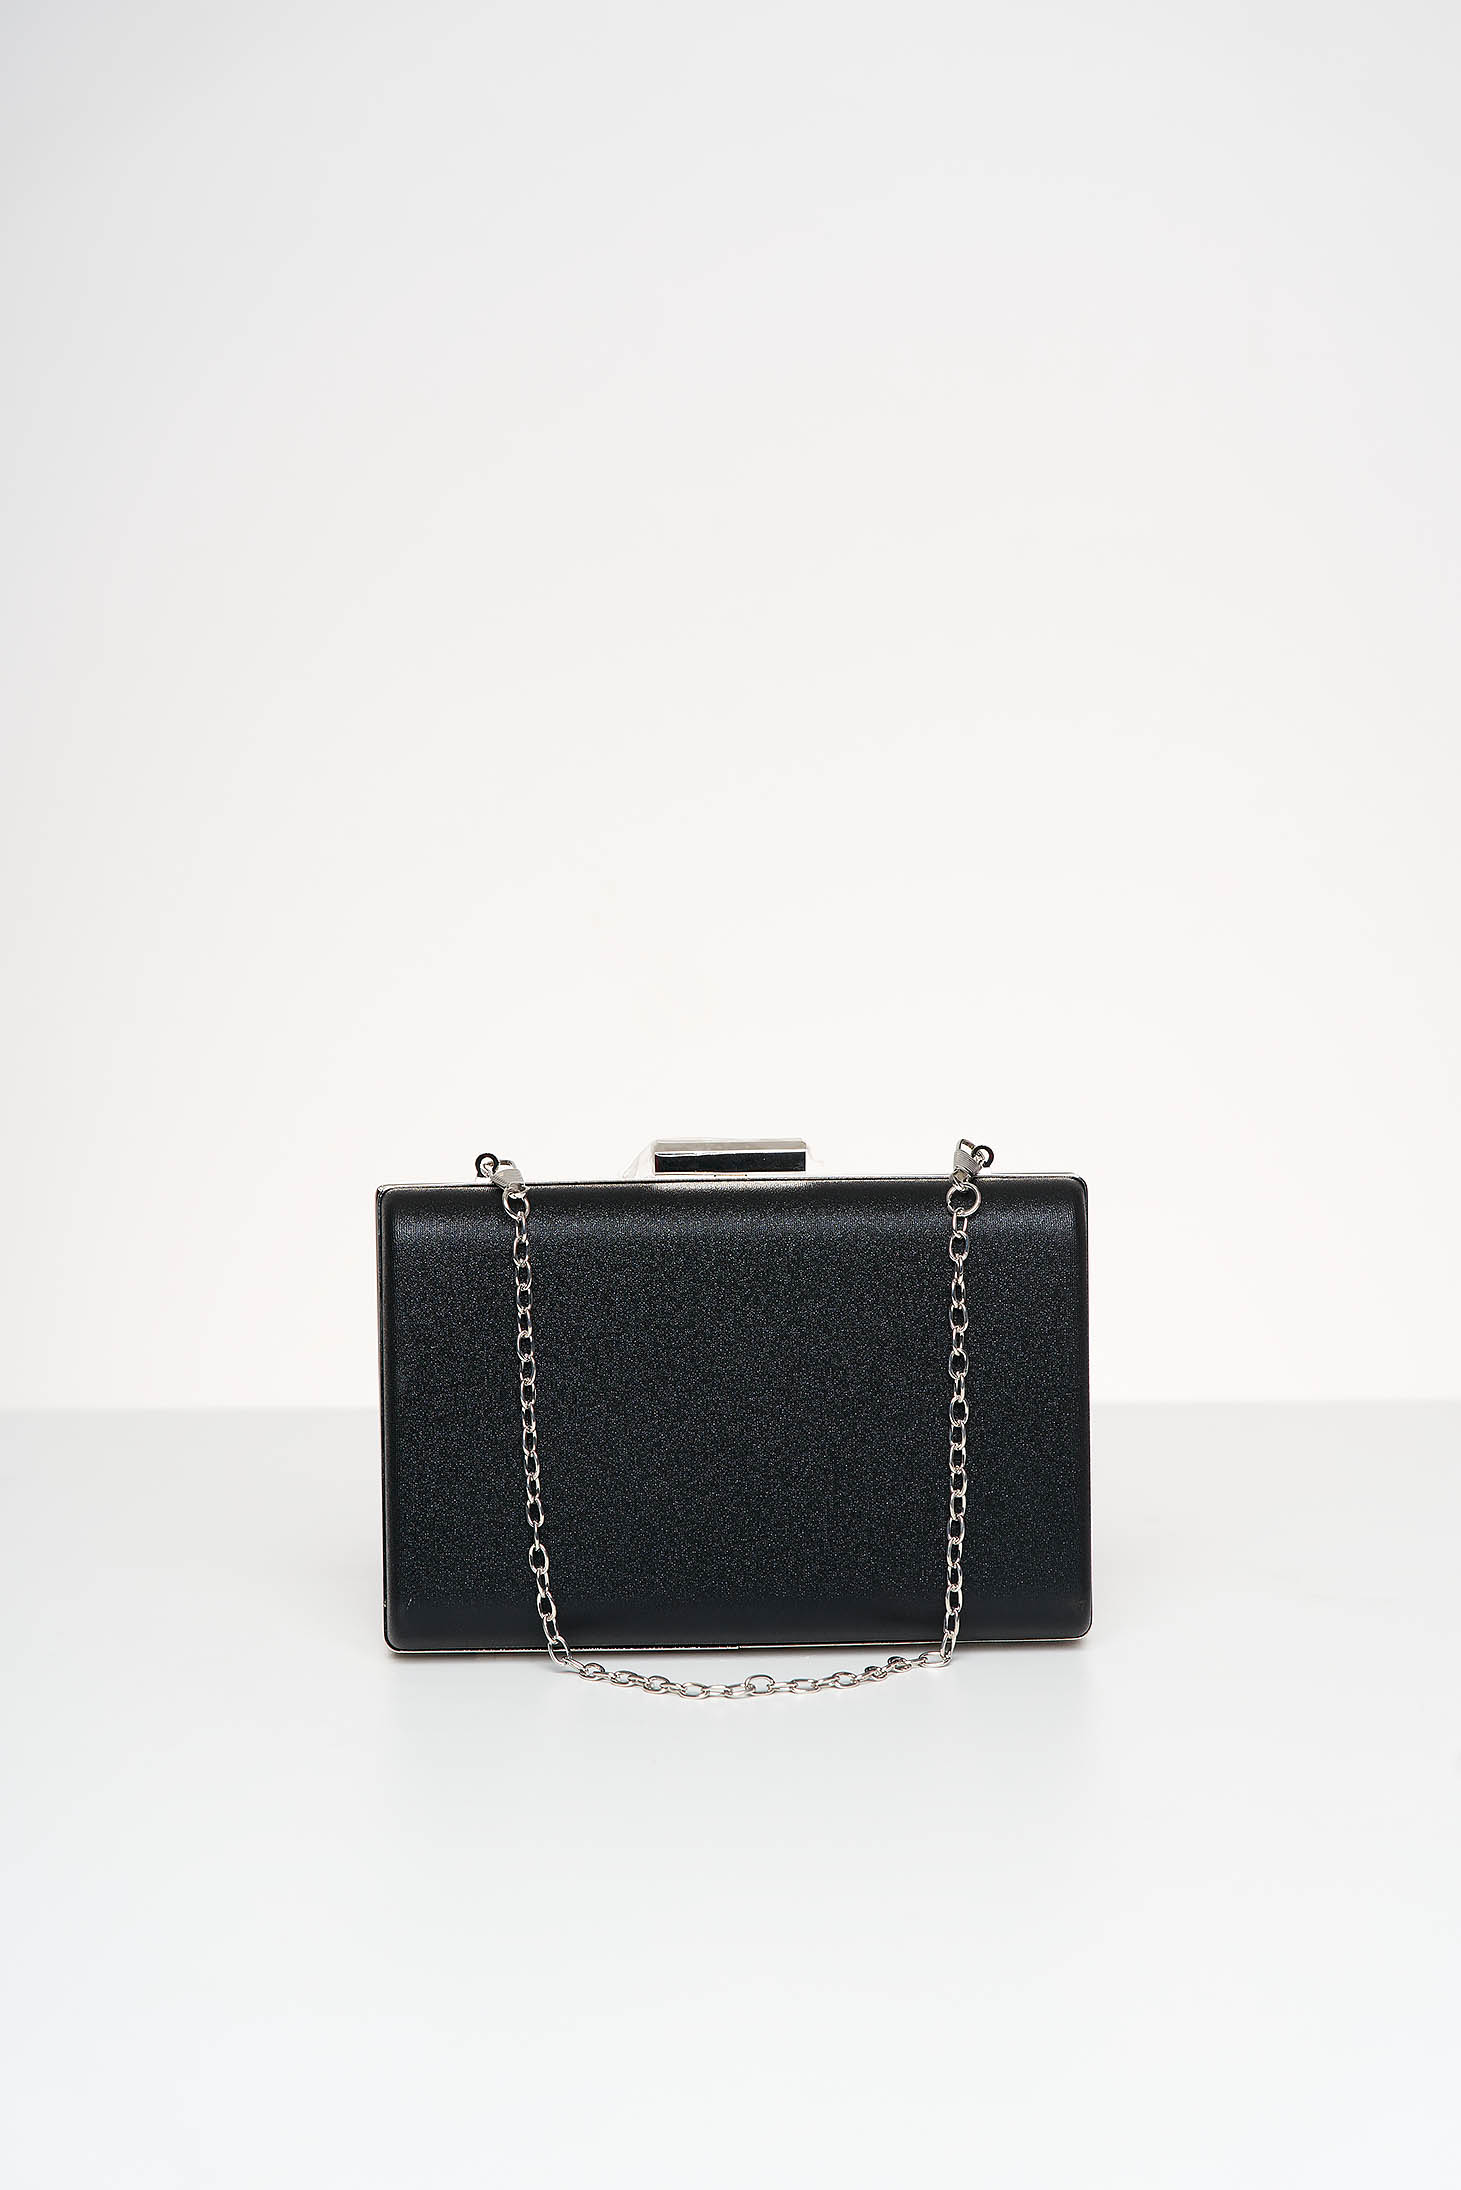 Black bag occasional from satin fabric texture with glitter details